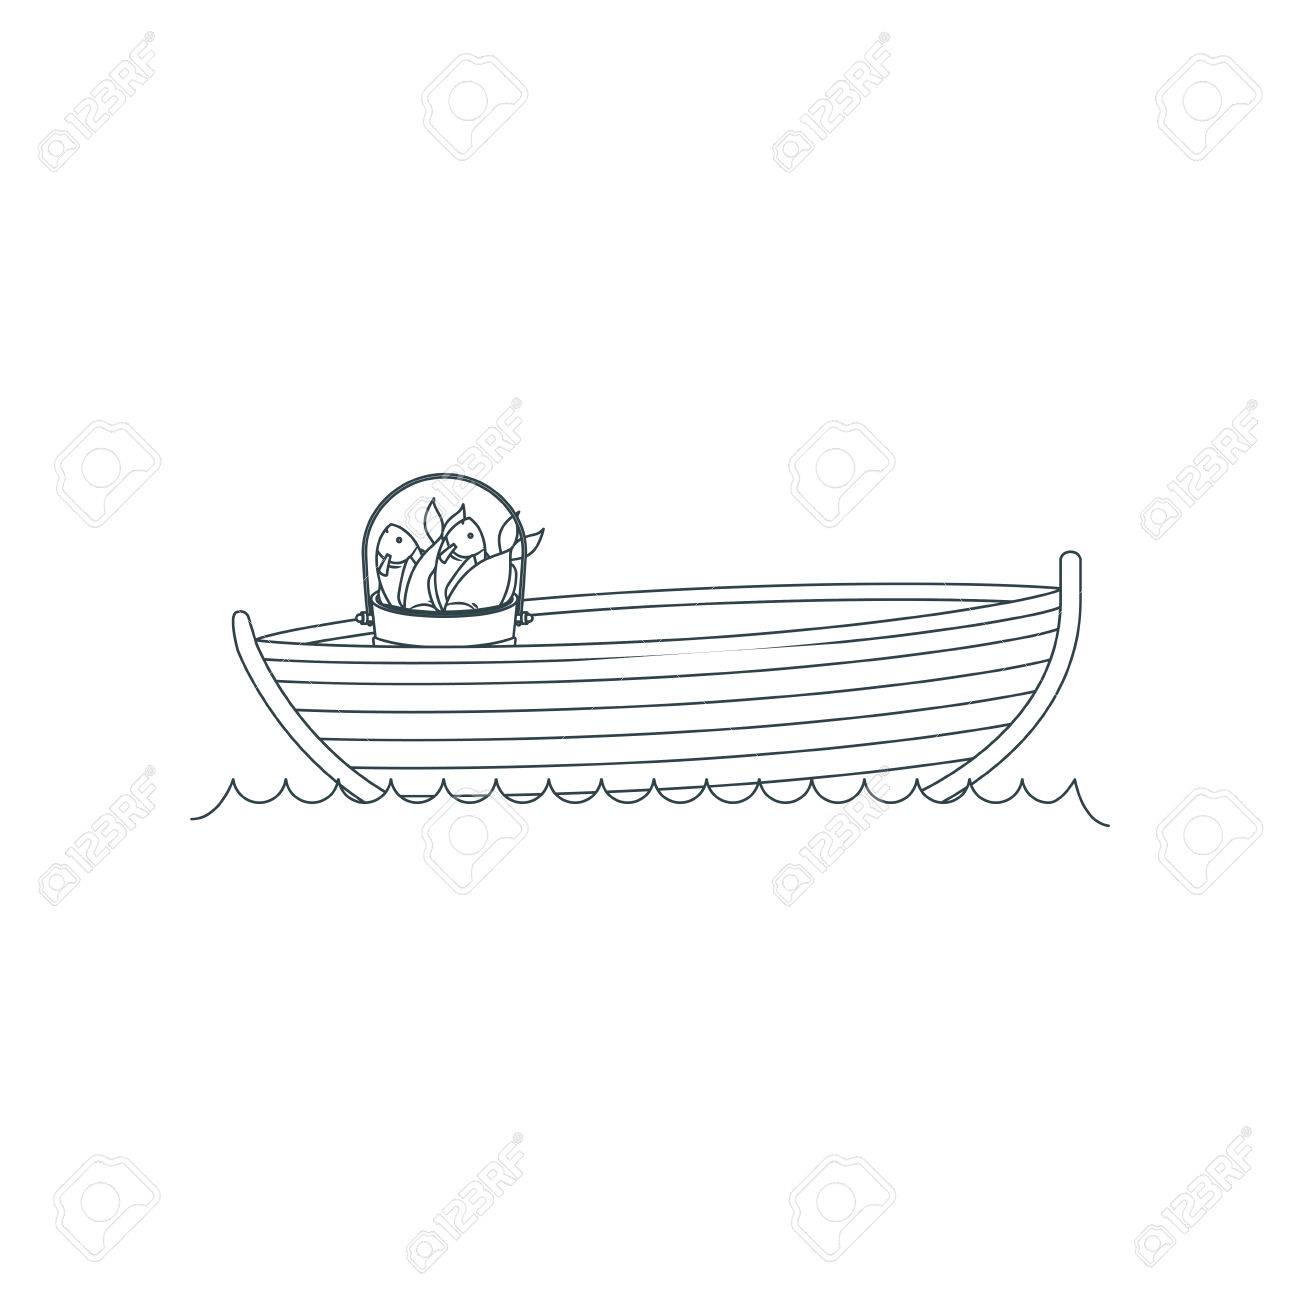 Free Kitchen Sink Clipart Black And White, Download Free Clip Art, Free Clip  Art on Clipart Library